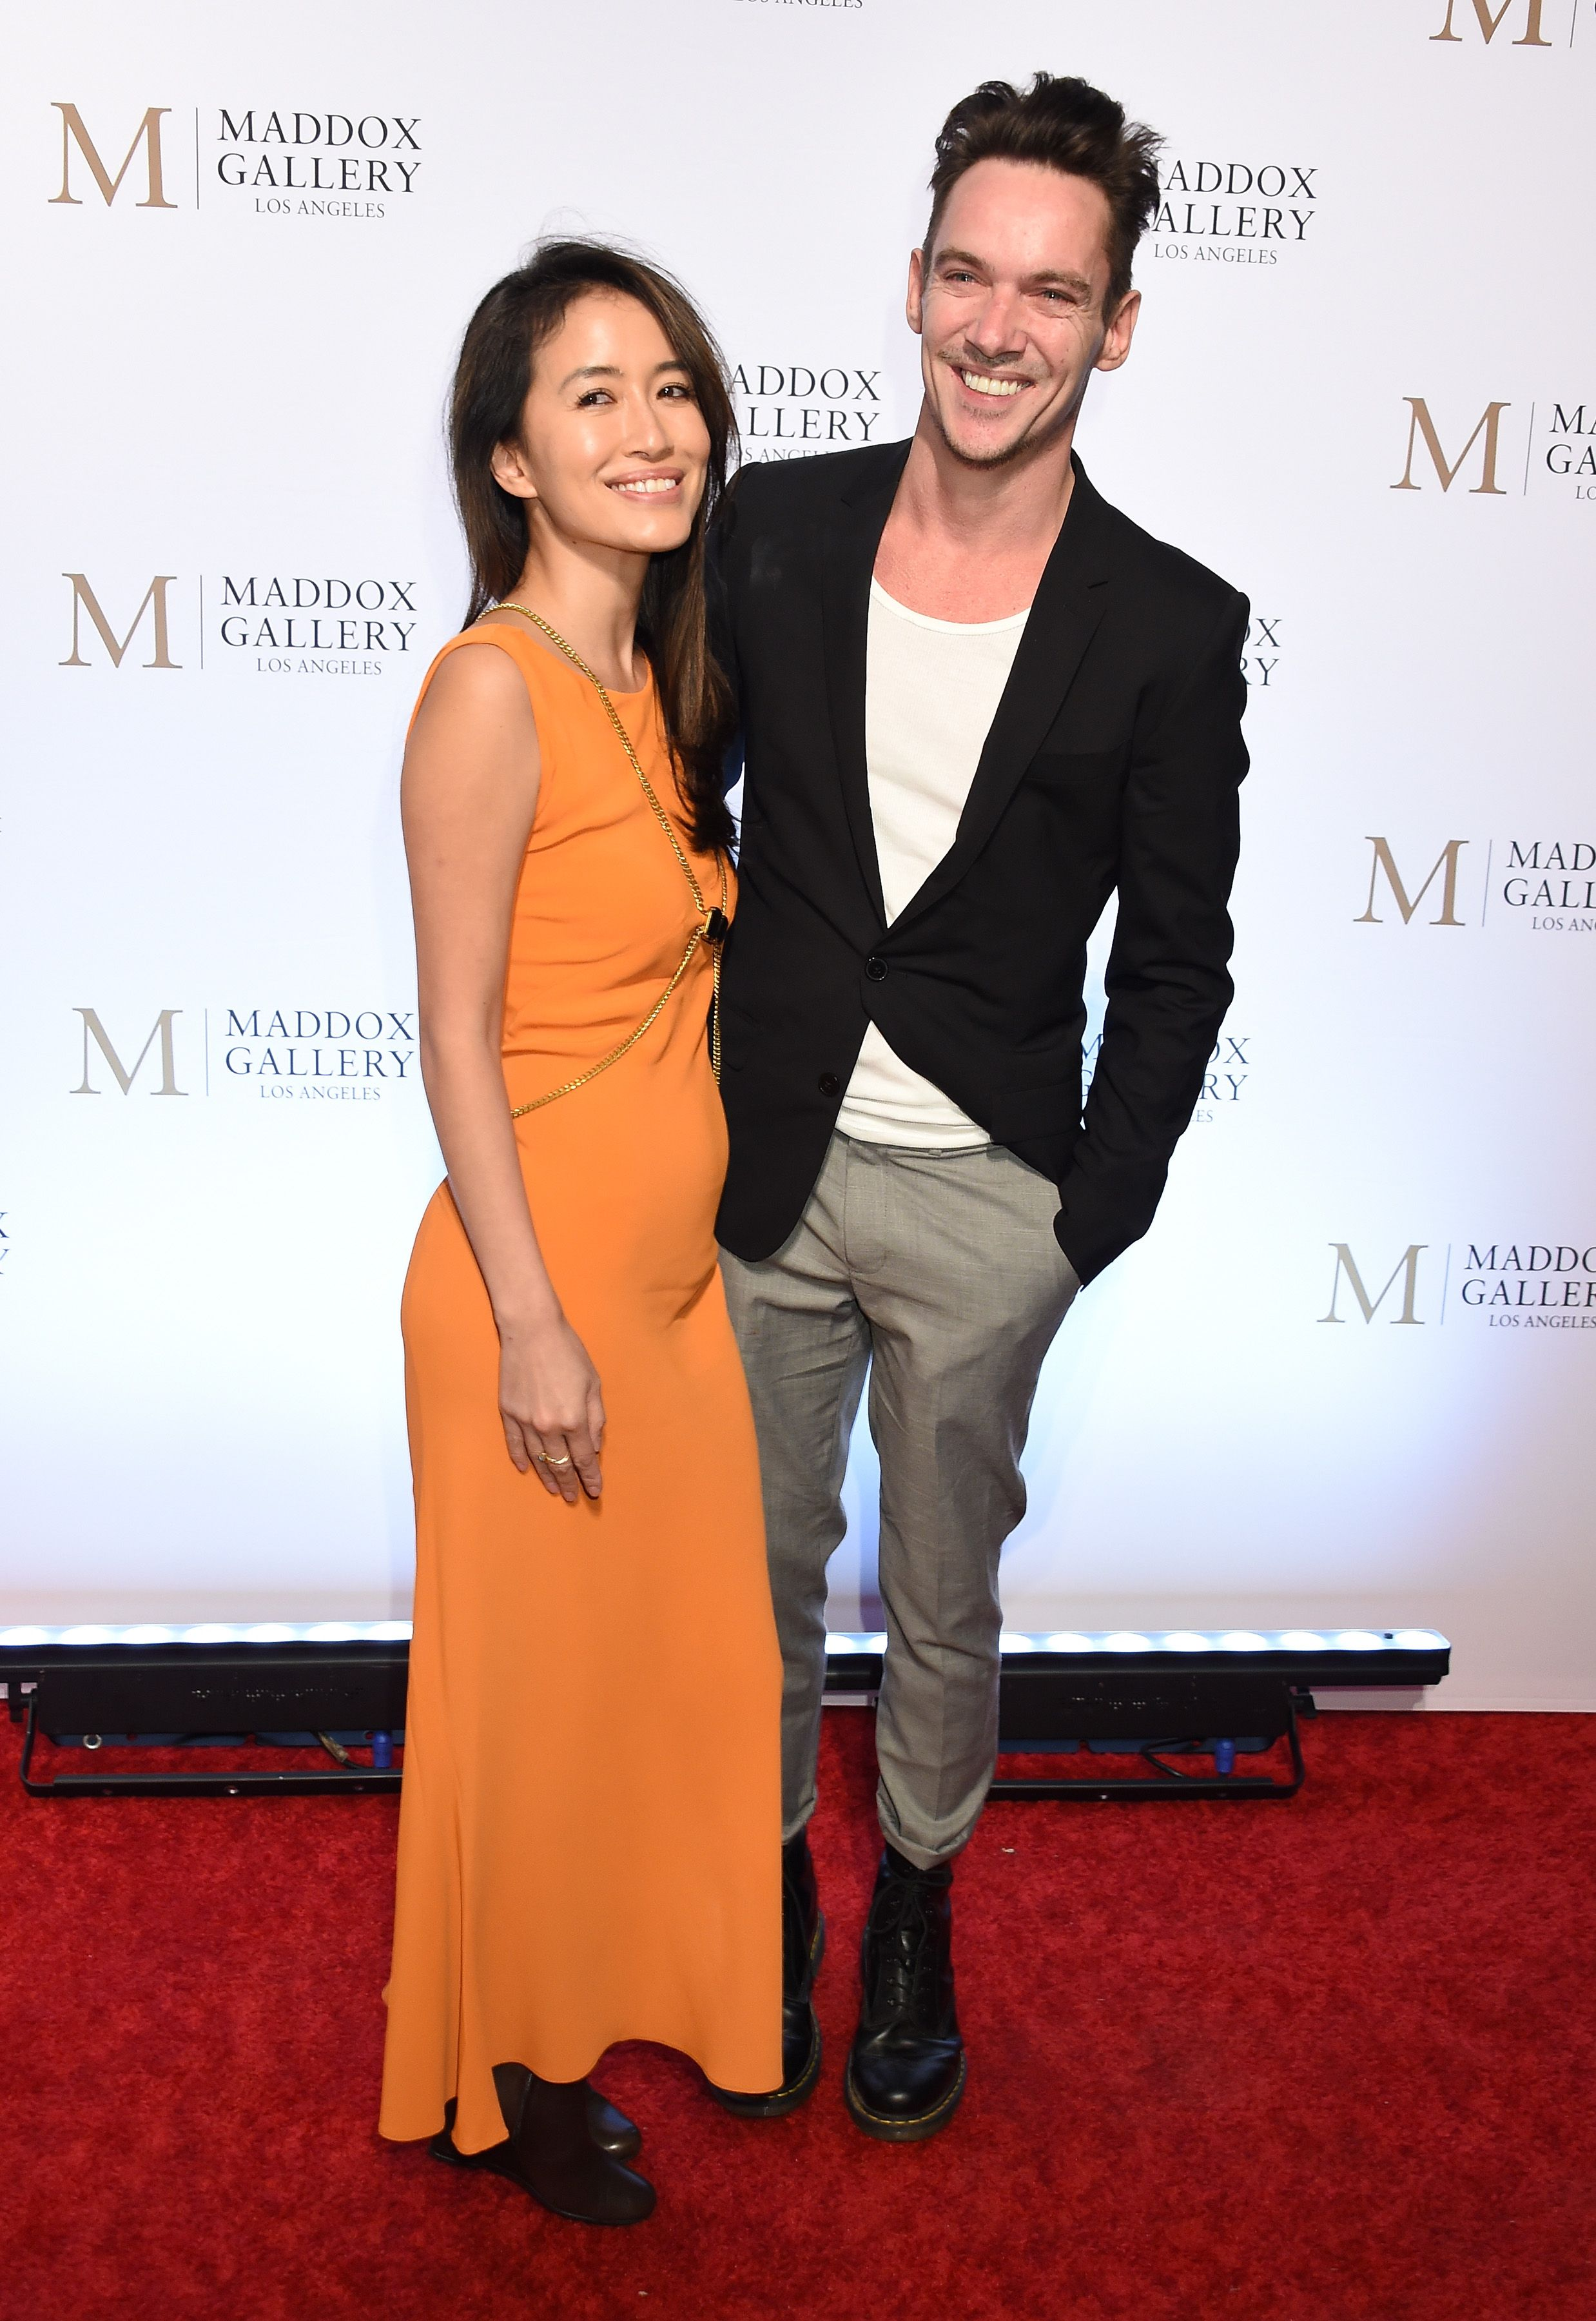 """Jonathan Rhys Meyers and wife Mara Lane at the VIP Opening of Maddox Gallery Exhibition """"Best Of British"""" in 2018 in Los Angeles 